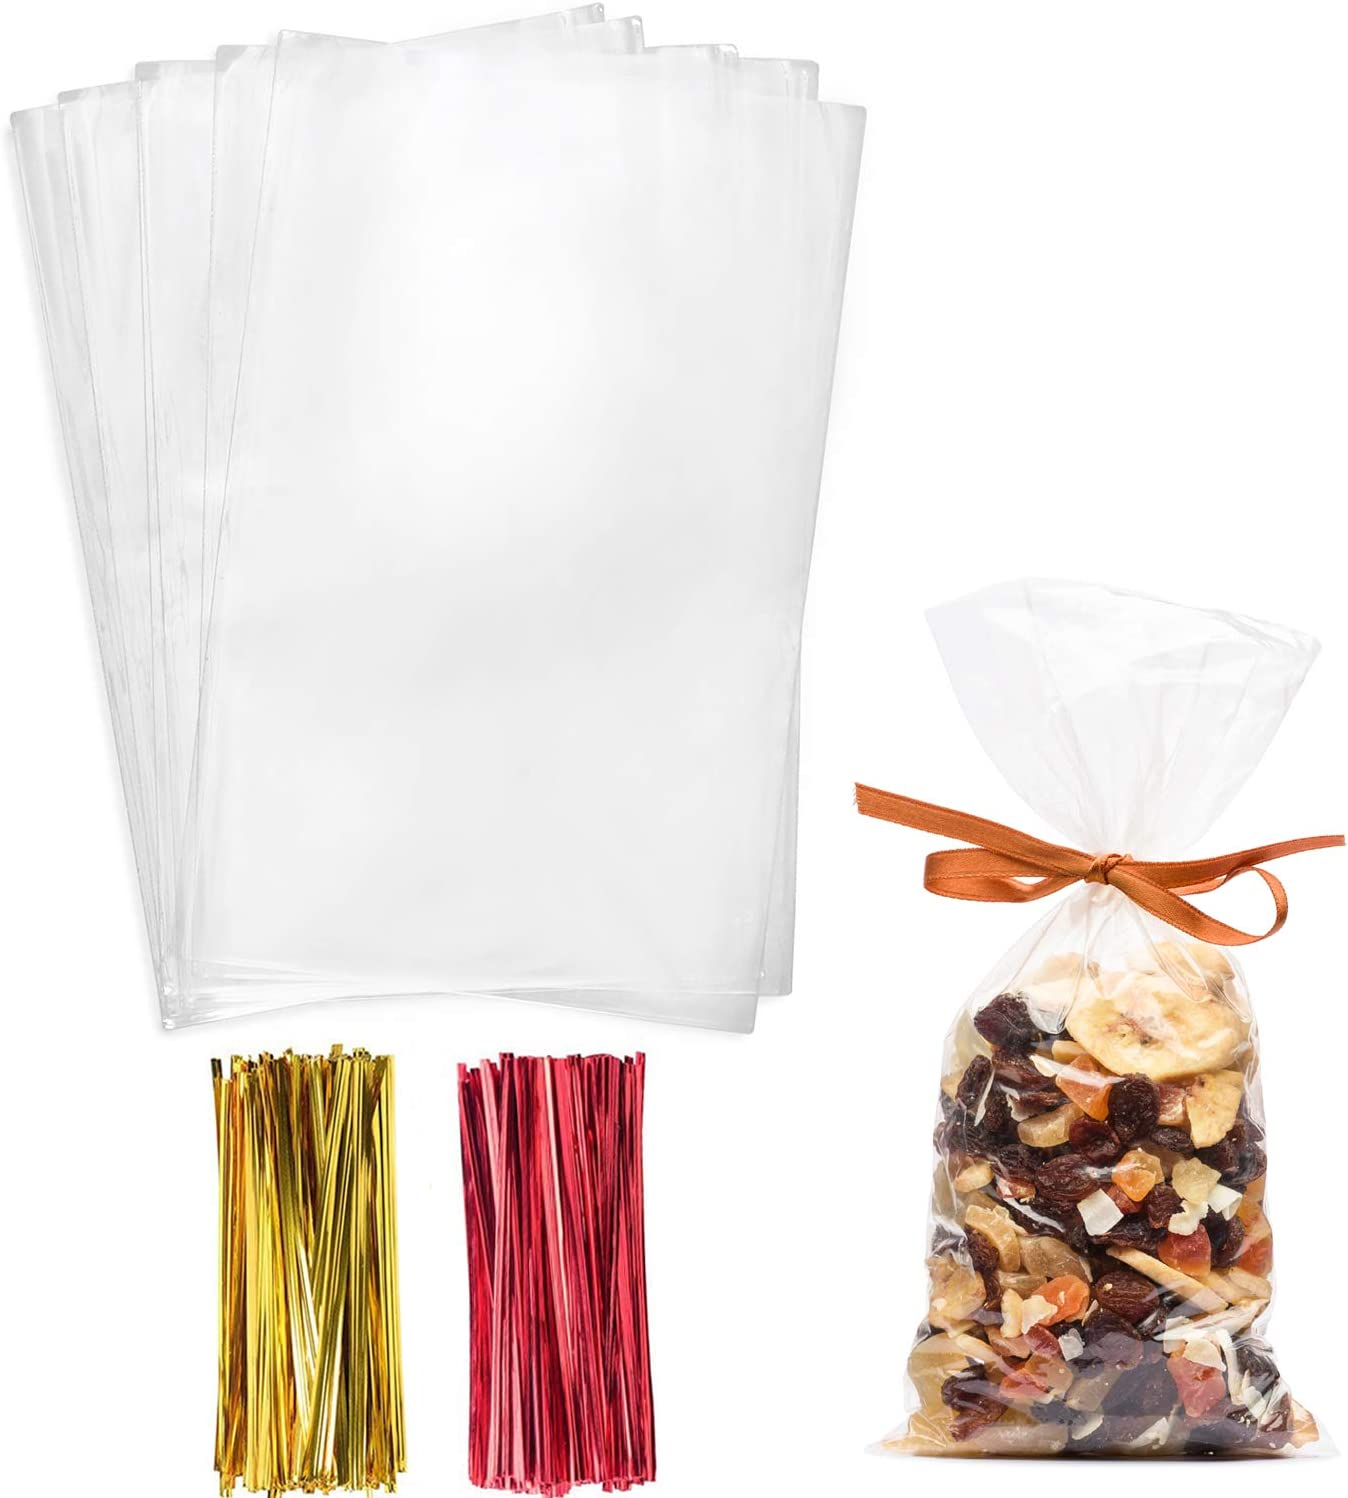 Cellophane Treat Bags,4x9 Inches Clear Cellophane Bags 200 Pcs OPP Plastic Treat Bags with 200 Twist Ties for Gift Wrapping,Packaging Candies,Dessert,Bakery, Cookies, Chocolate,Party Favors